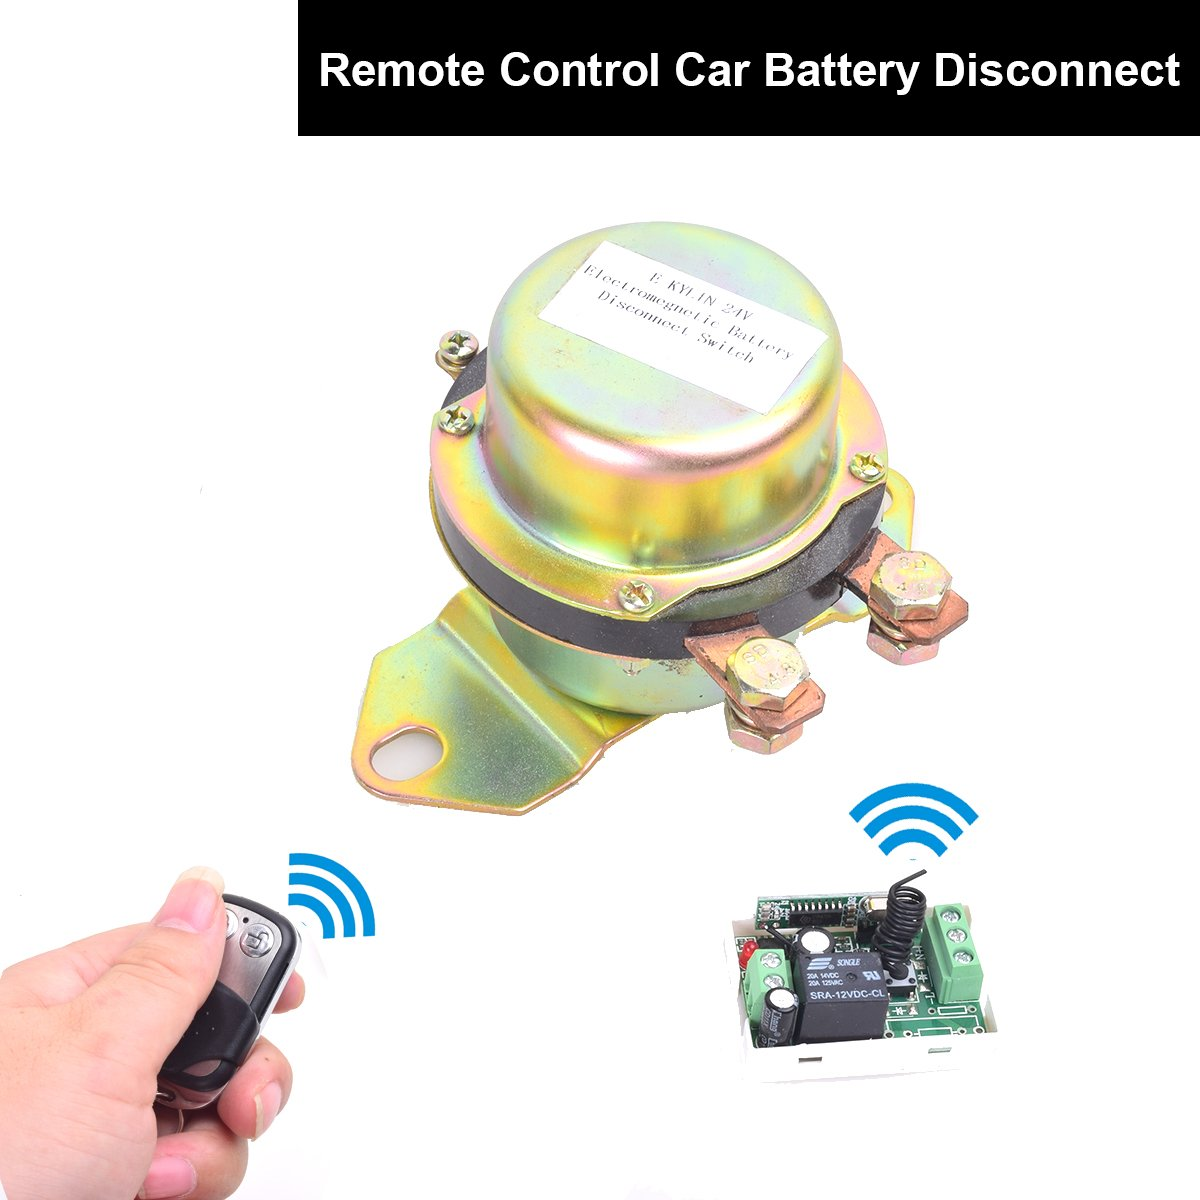 Car Auto Remote Control Battery Switch Disconnect Anti Theft Dc 12v Controlled Appliance Circuit Latching Relay Electromagnetic Solenoid Valve Power Terminal Master Kill System